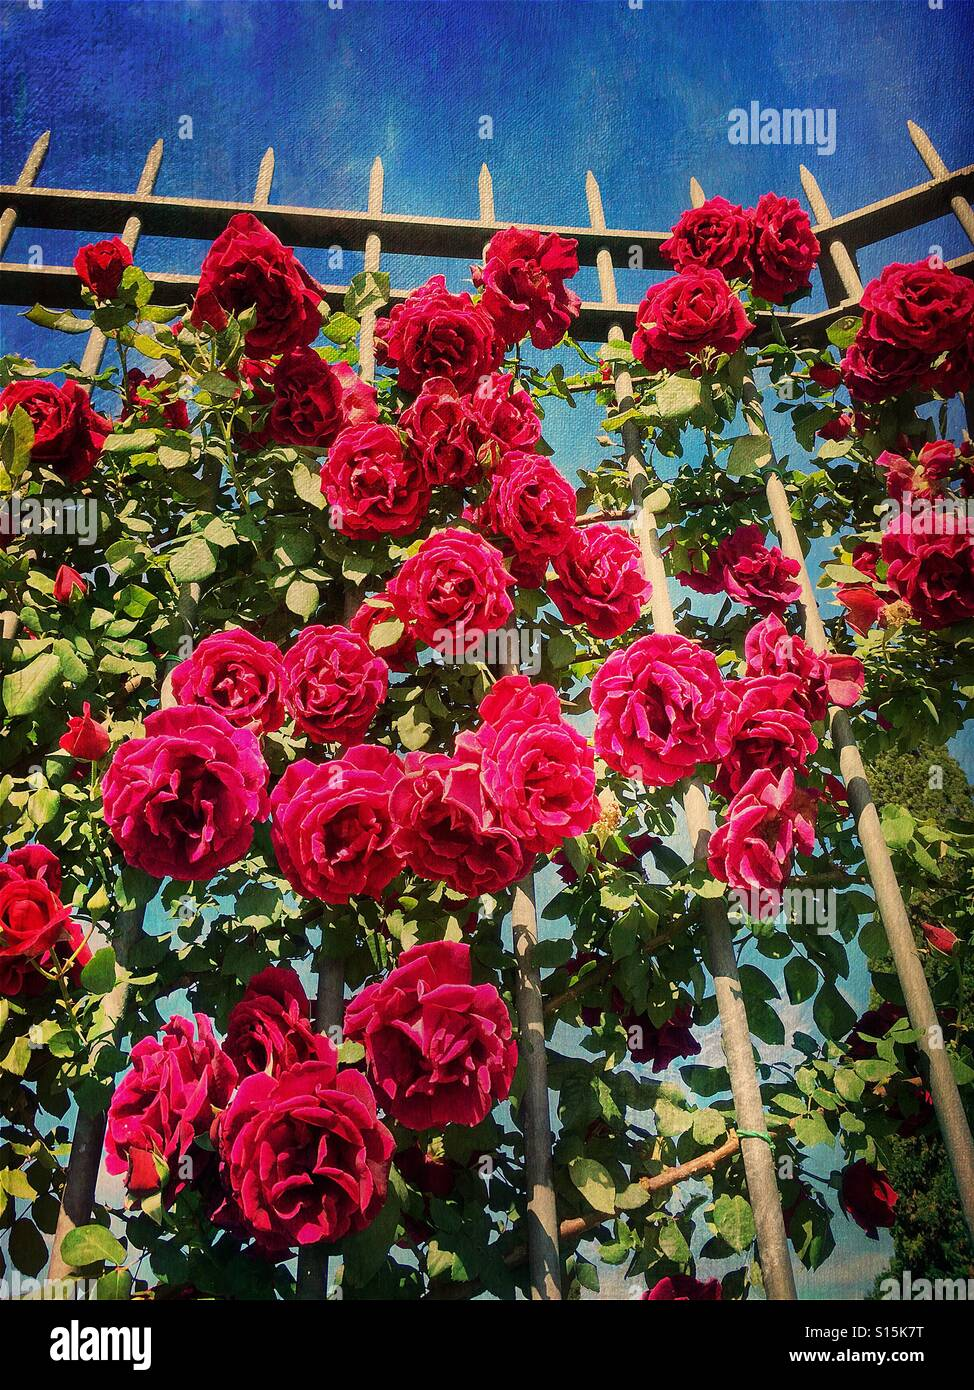 Beautiful red roses at the Roseto Comunale garden in Ripa, Rome, Italy. Vintage paper texture overlay. - Stock Image